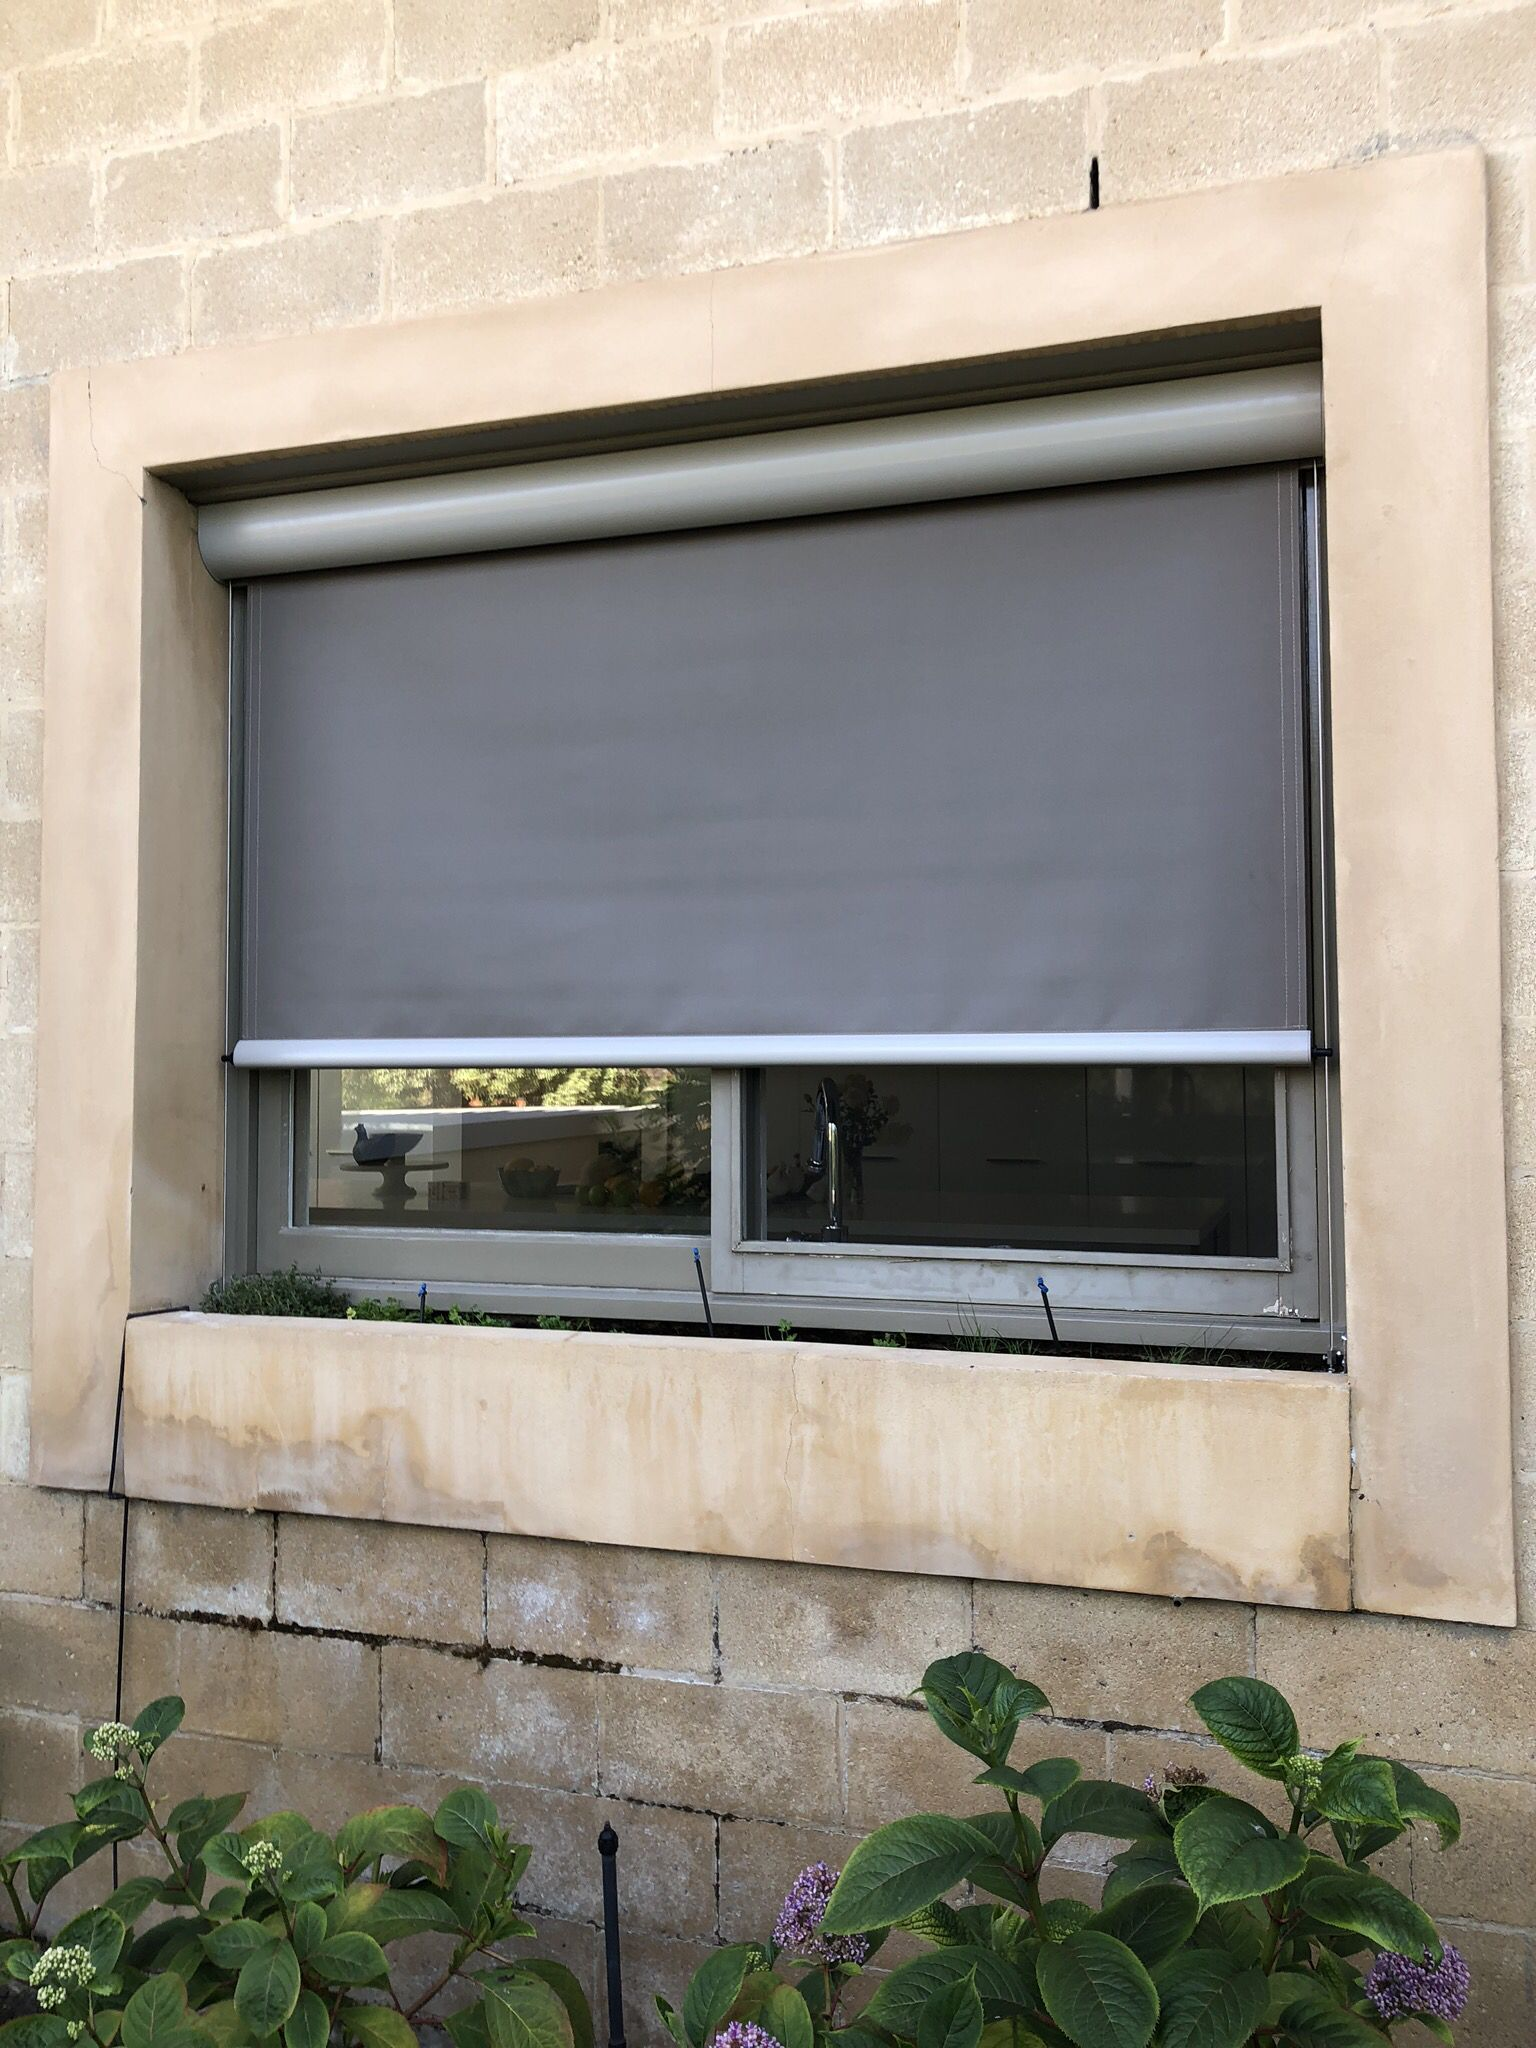 Window Awnings Melbourne Outdoor Window Awnings Melbourne Window Awnings Outdoor Window Awnings Outdoor Awnings